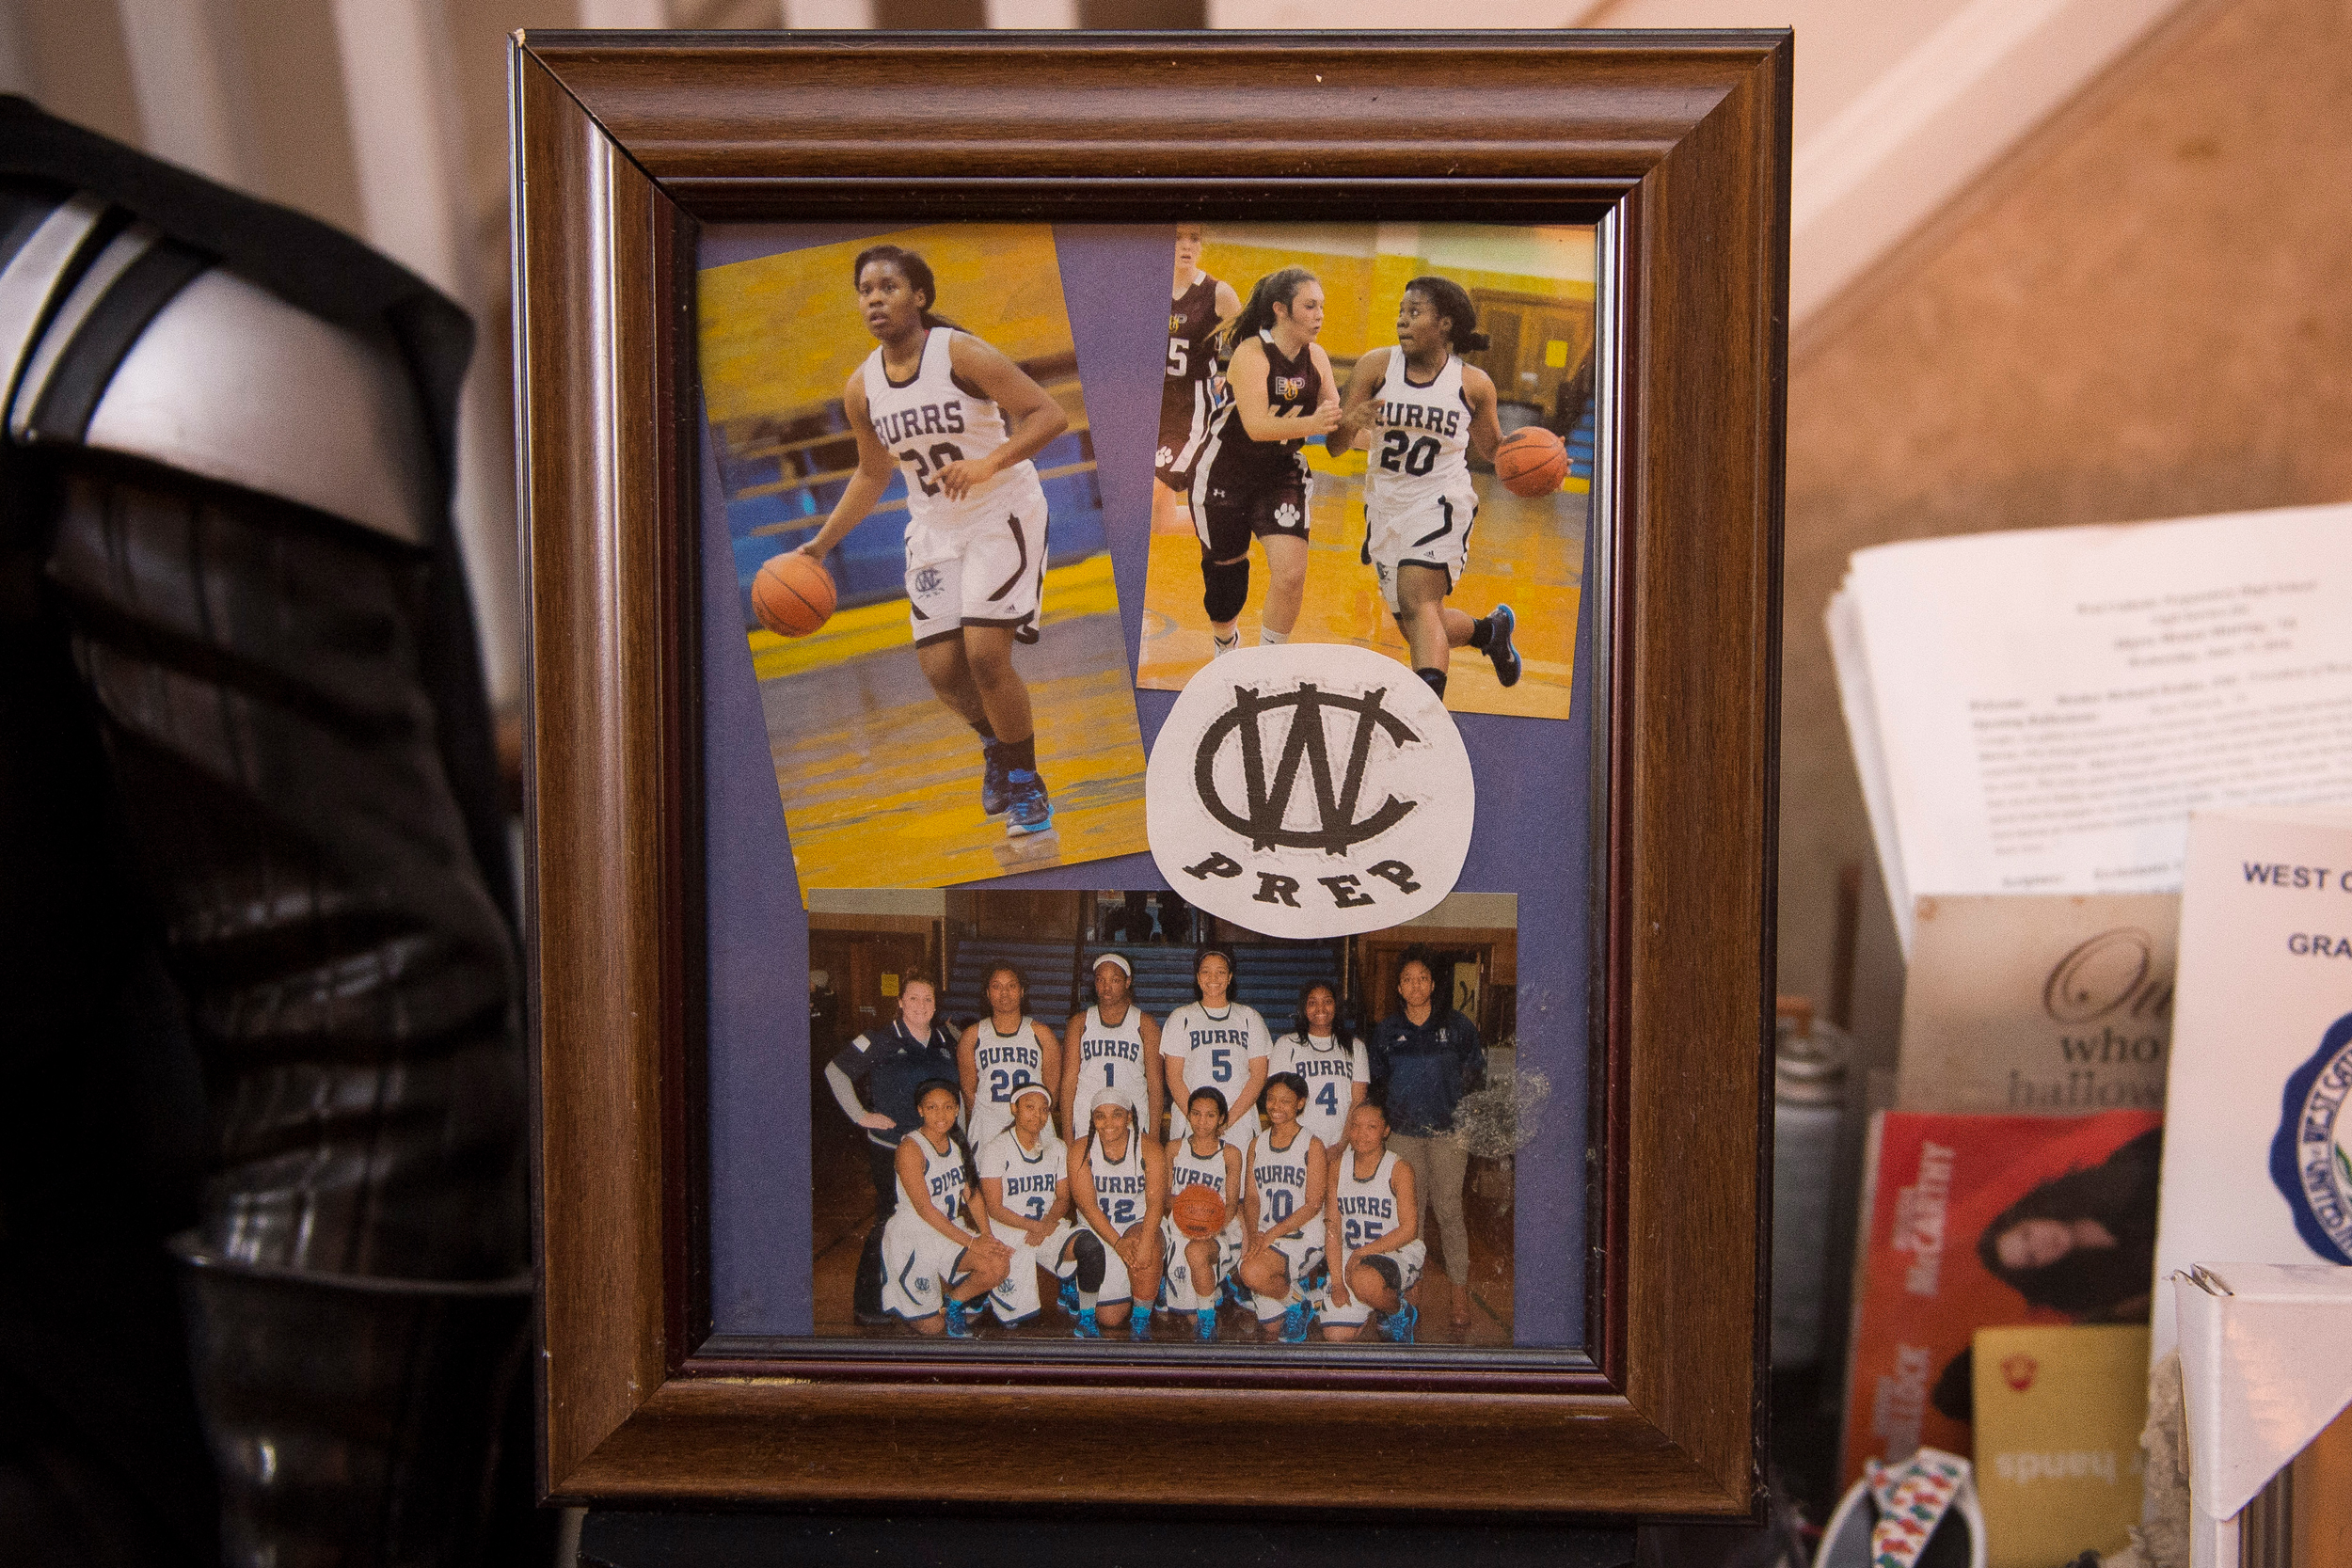 Framed photos of Akyra Murray at her parents home.